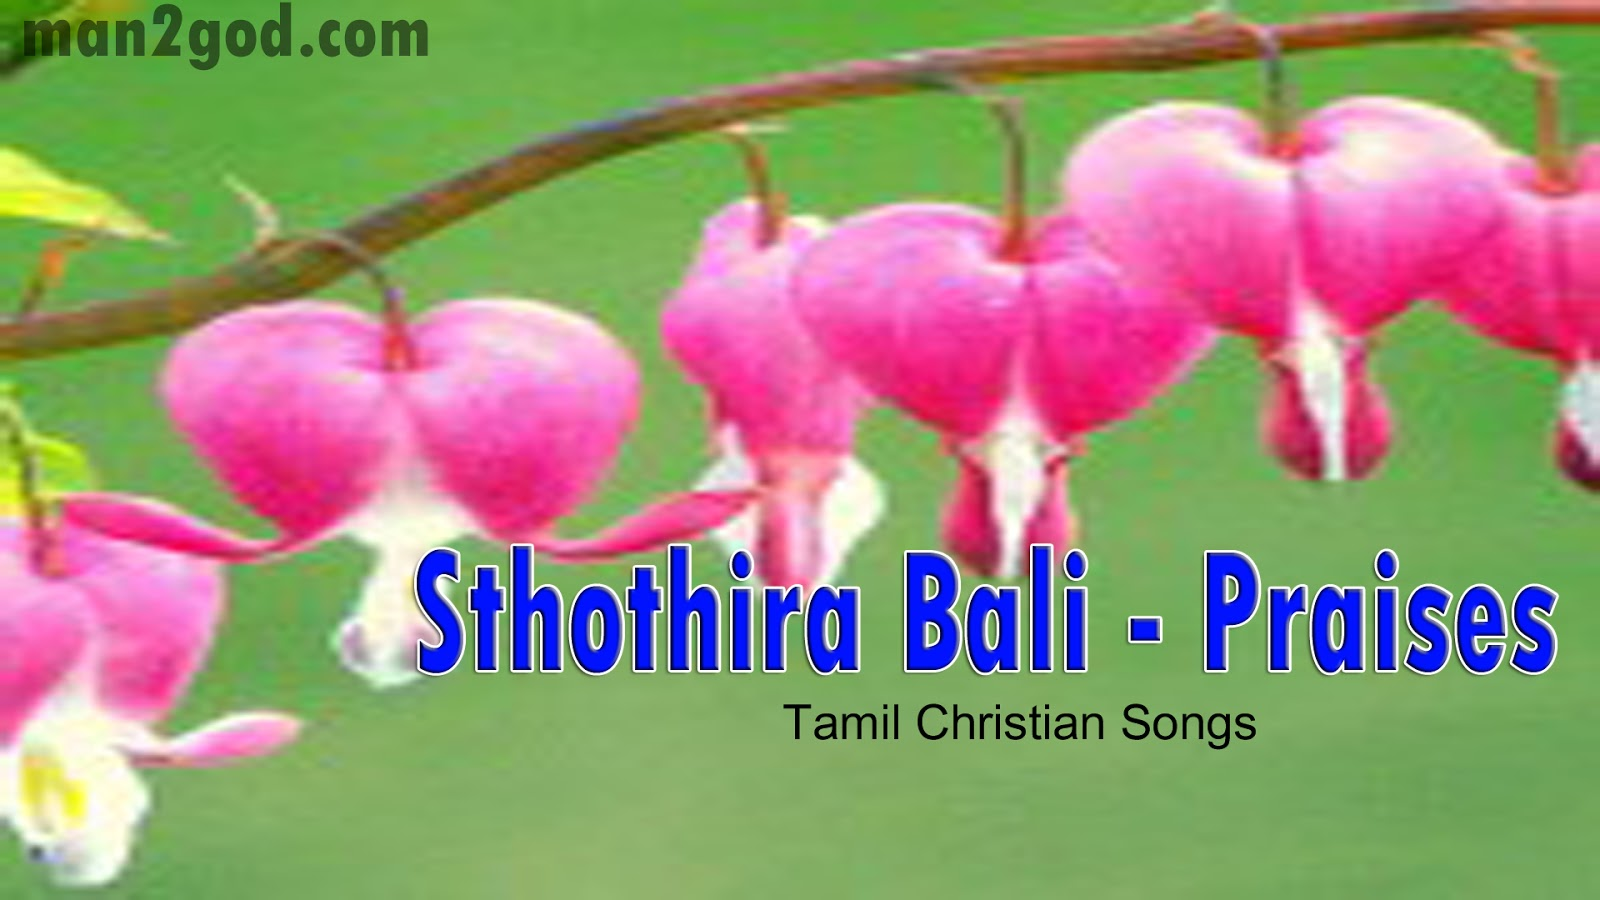 Tamil christian songs software free download